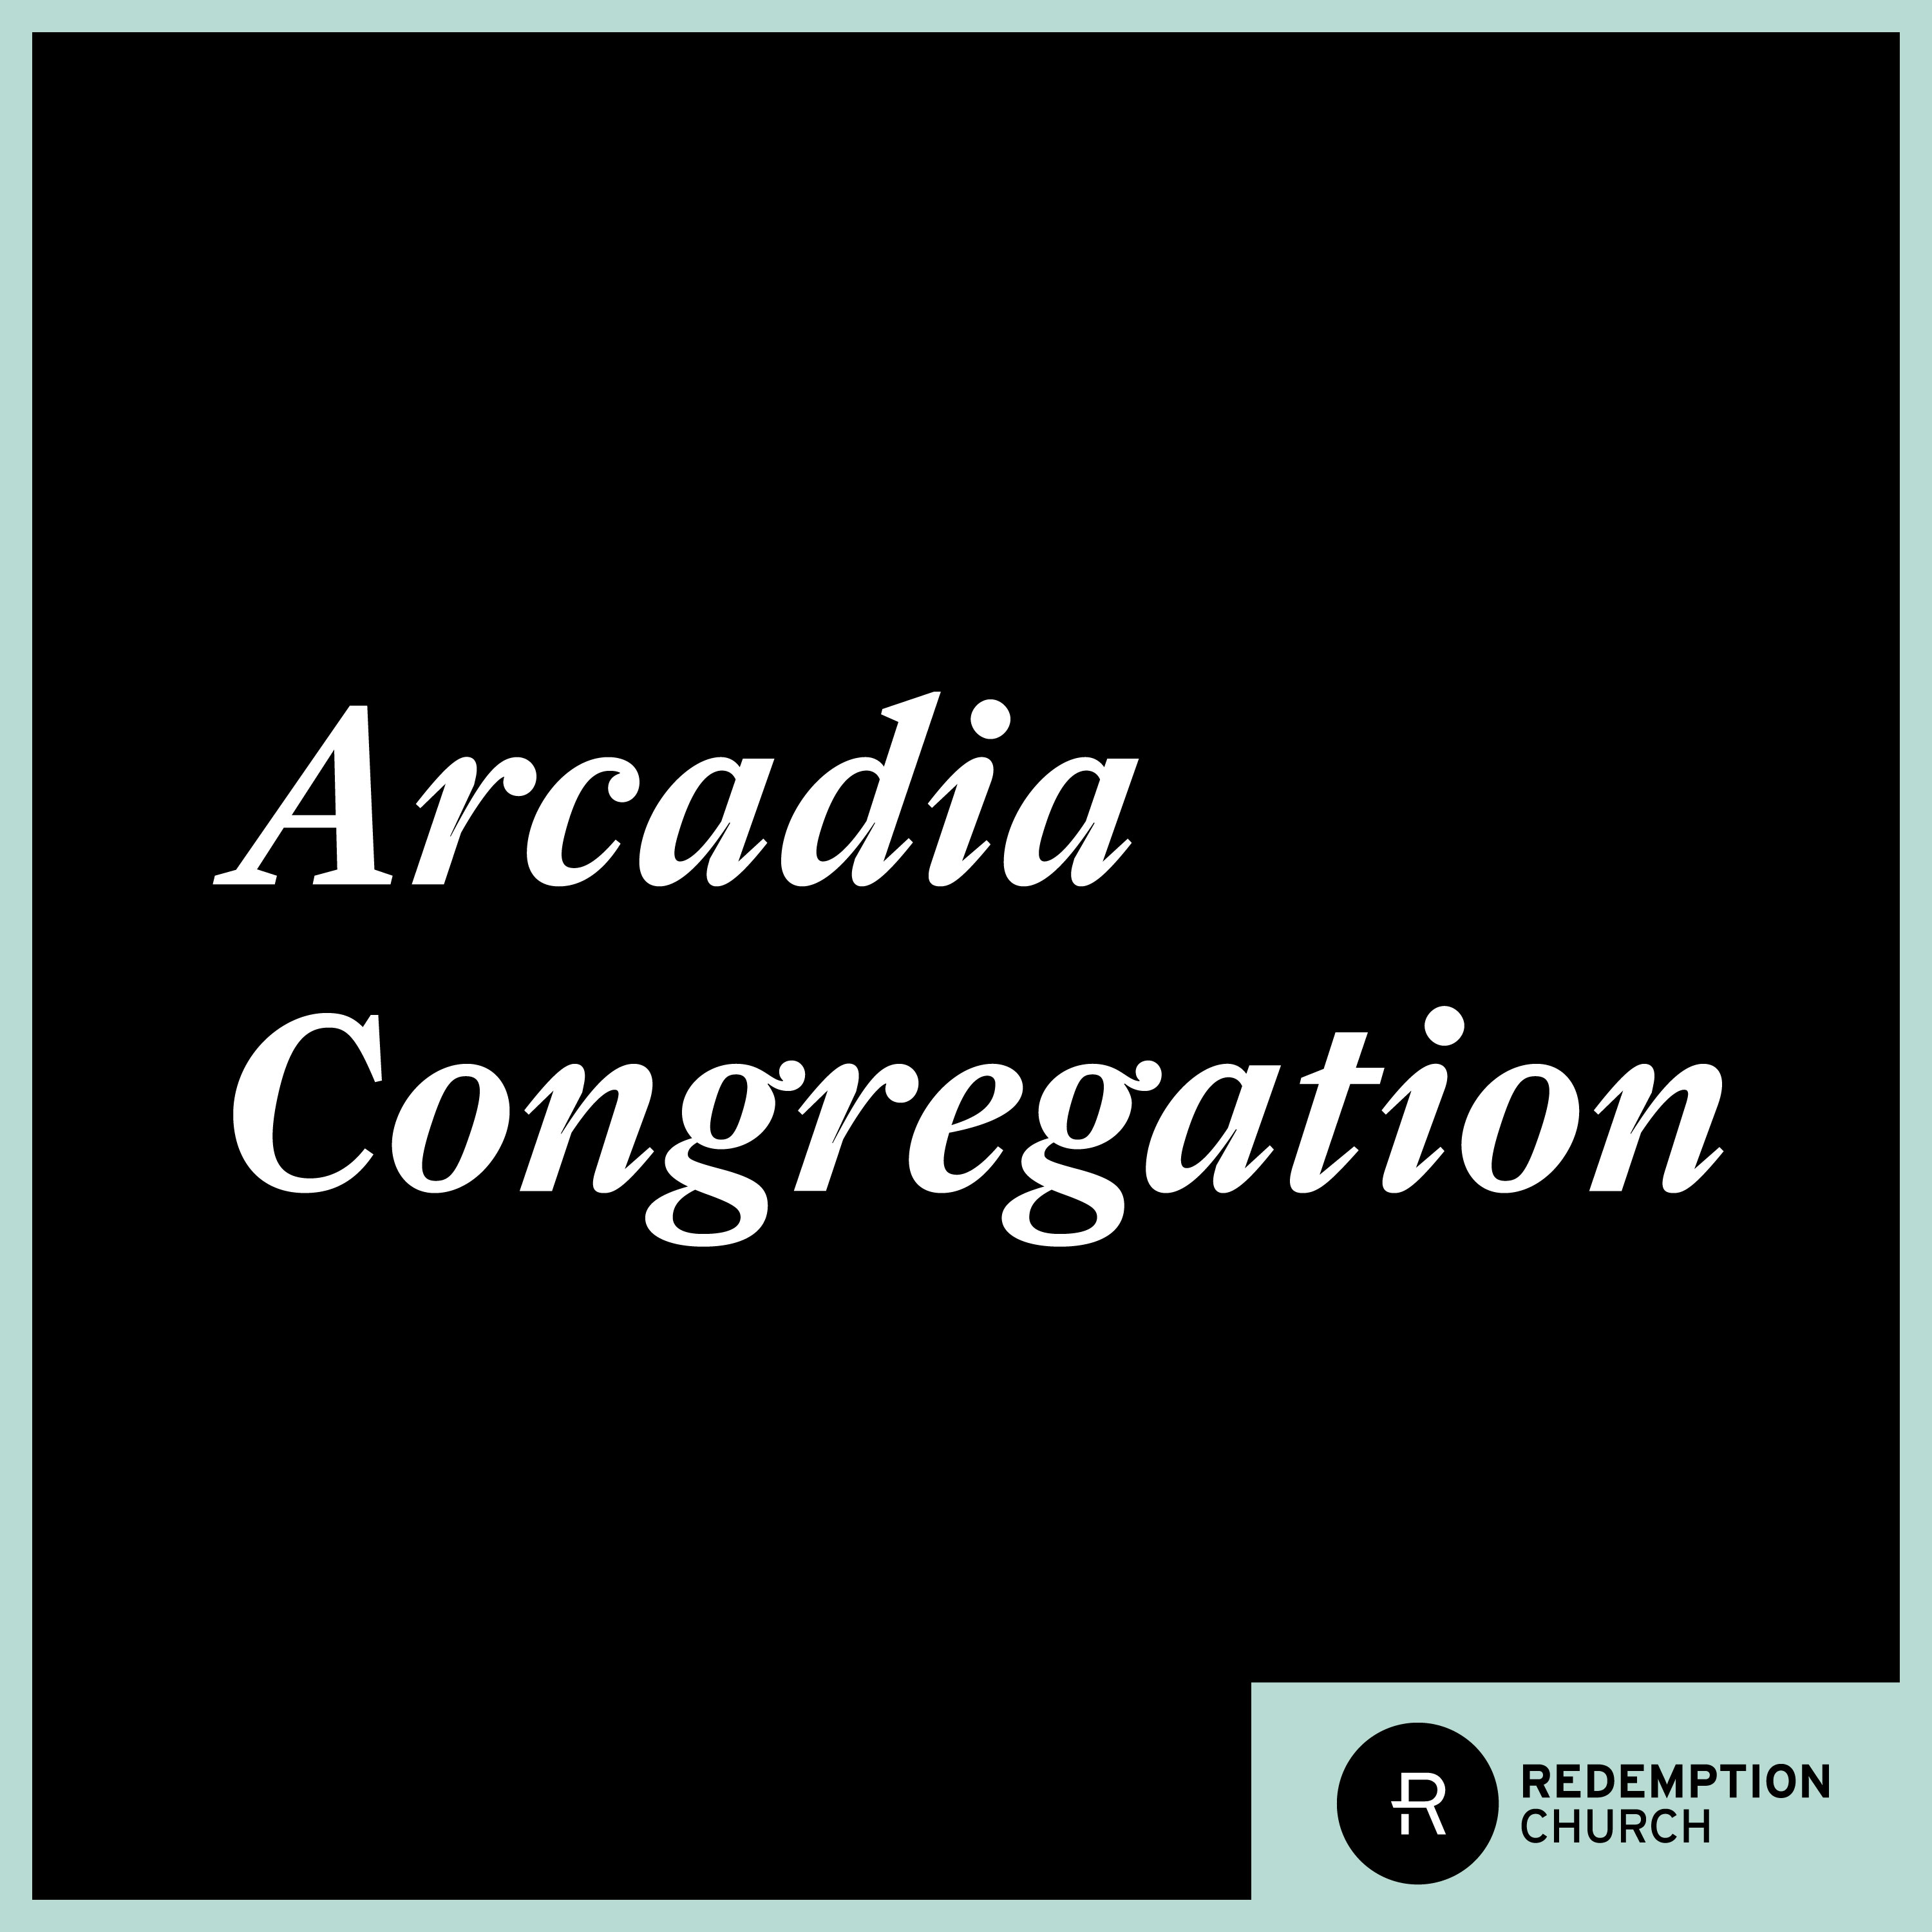 Redemption Church Arcadia